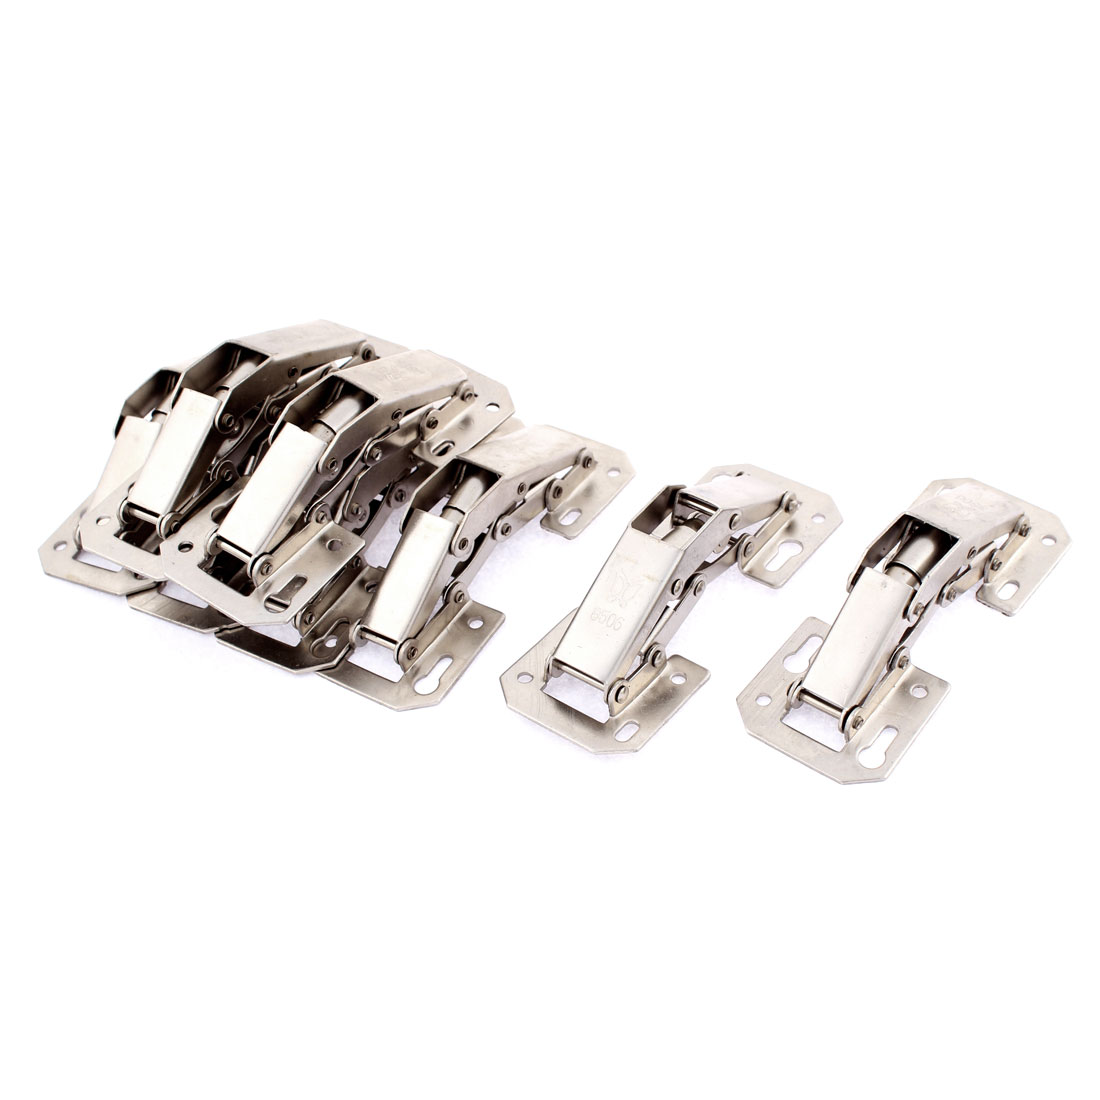 Cabinet Hydraulic Self Close Half Overlay Clip Concealed Inset Hinges 8pcs